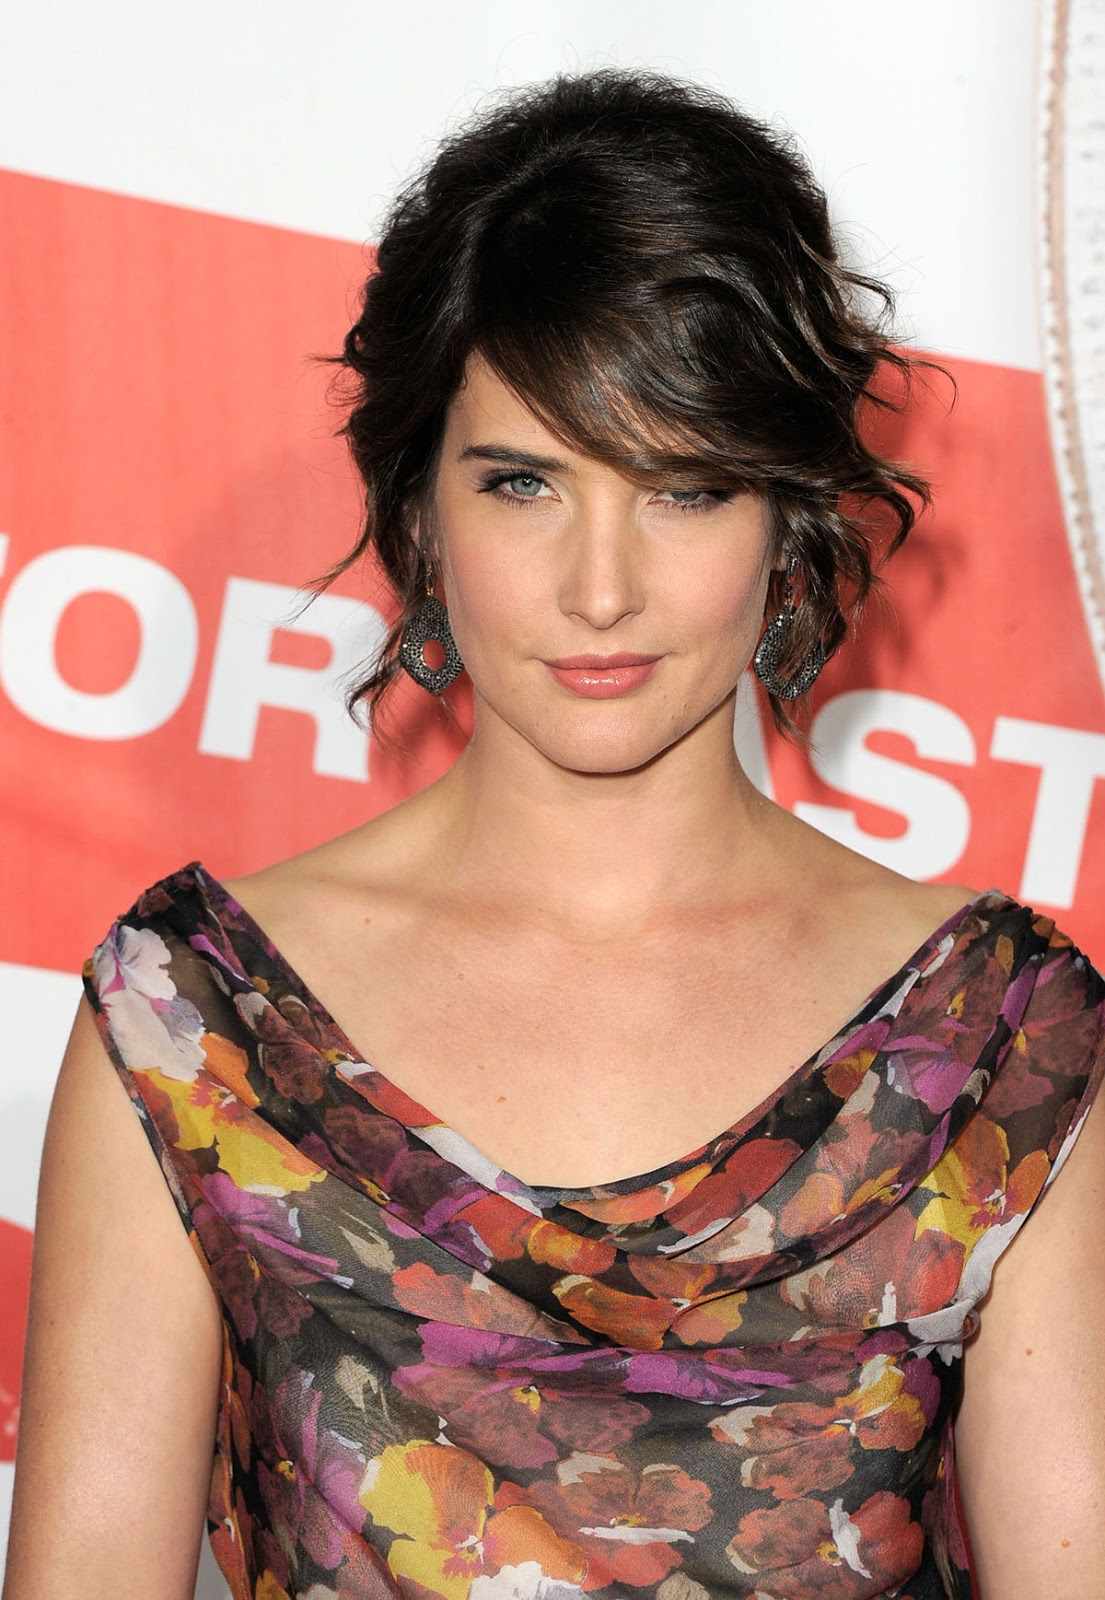 Marvel Comics Actress Cobie Smulders at American Reunion Premiere in Los Angeles